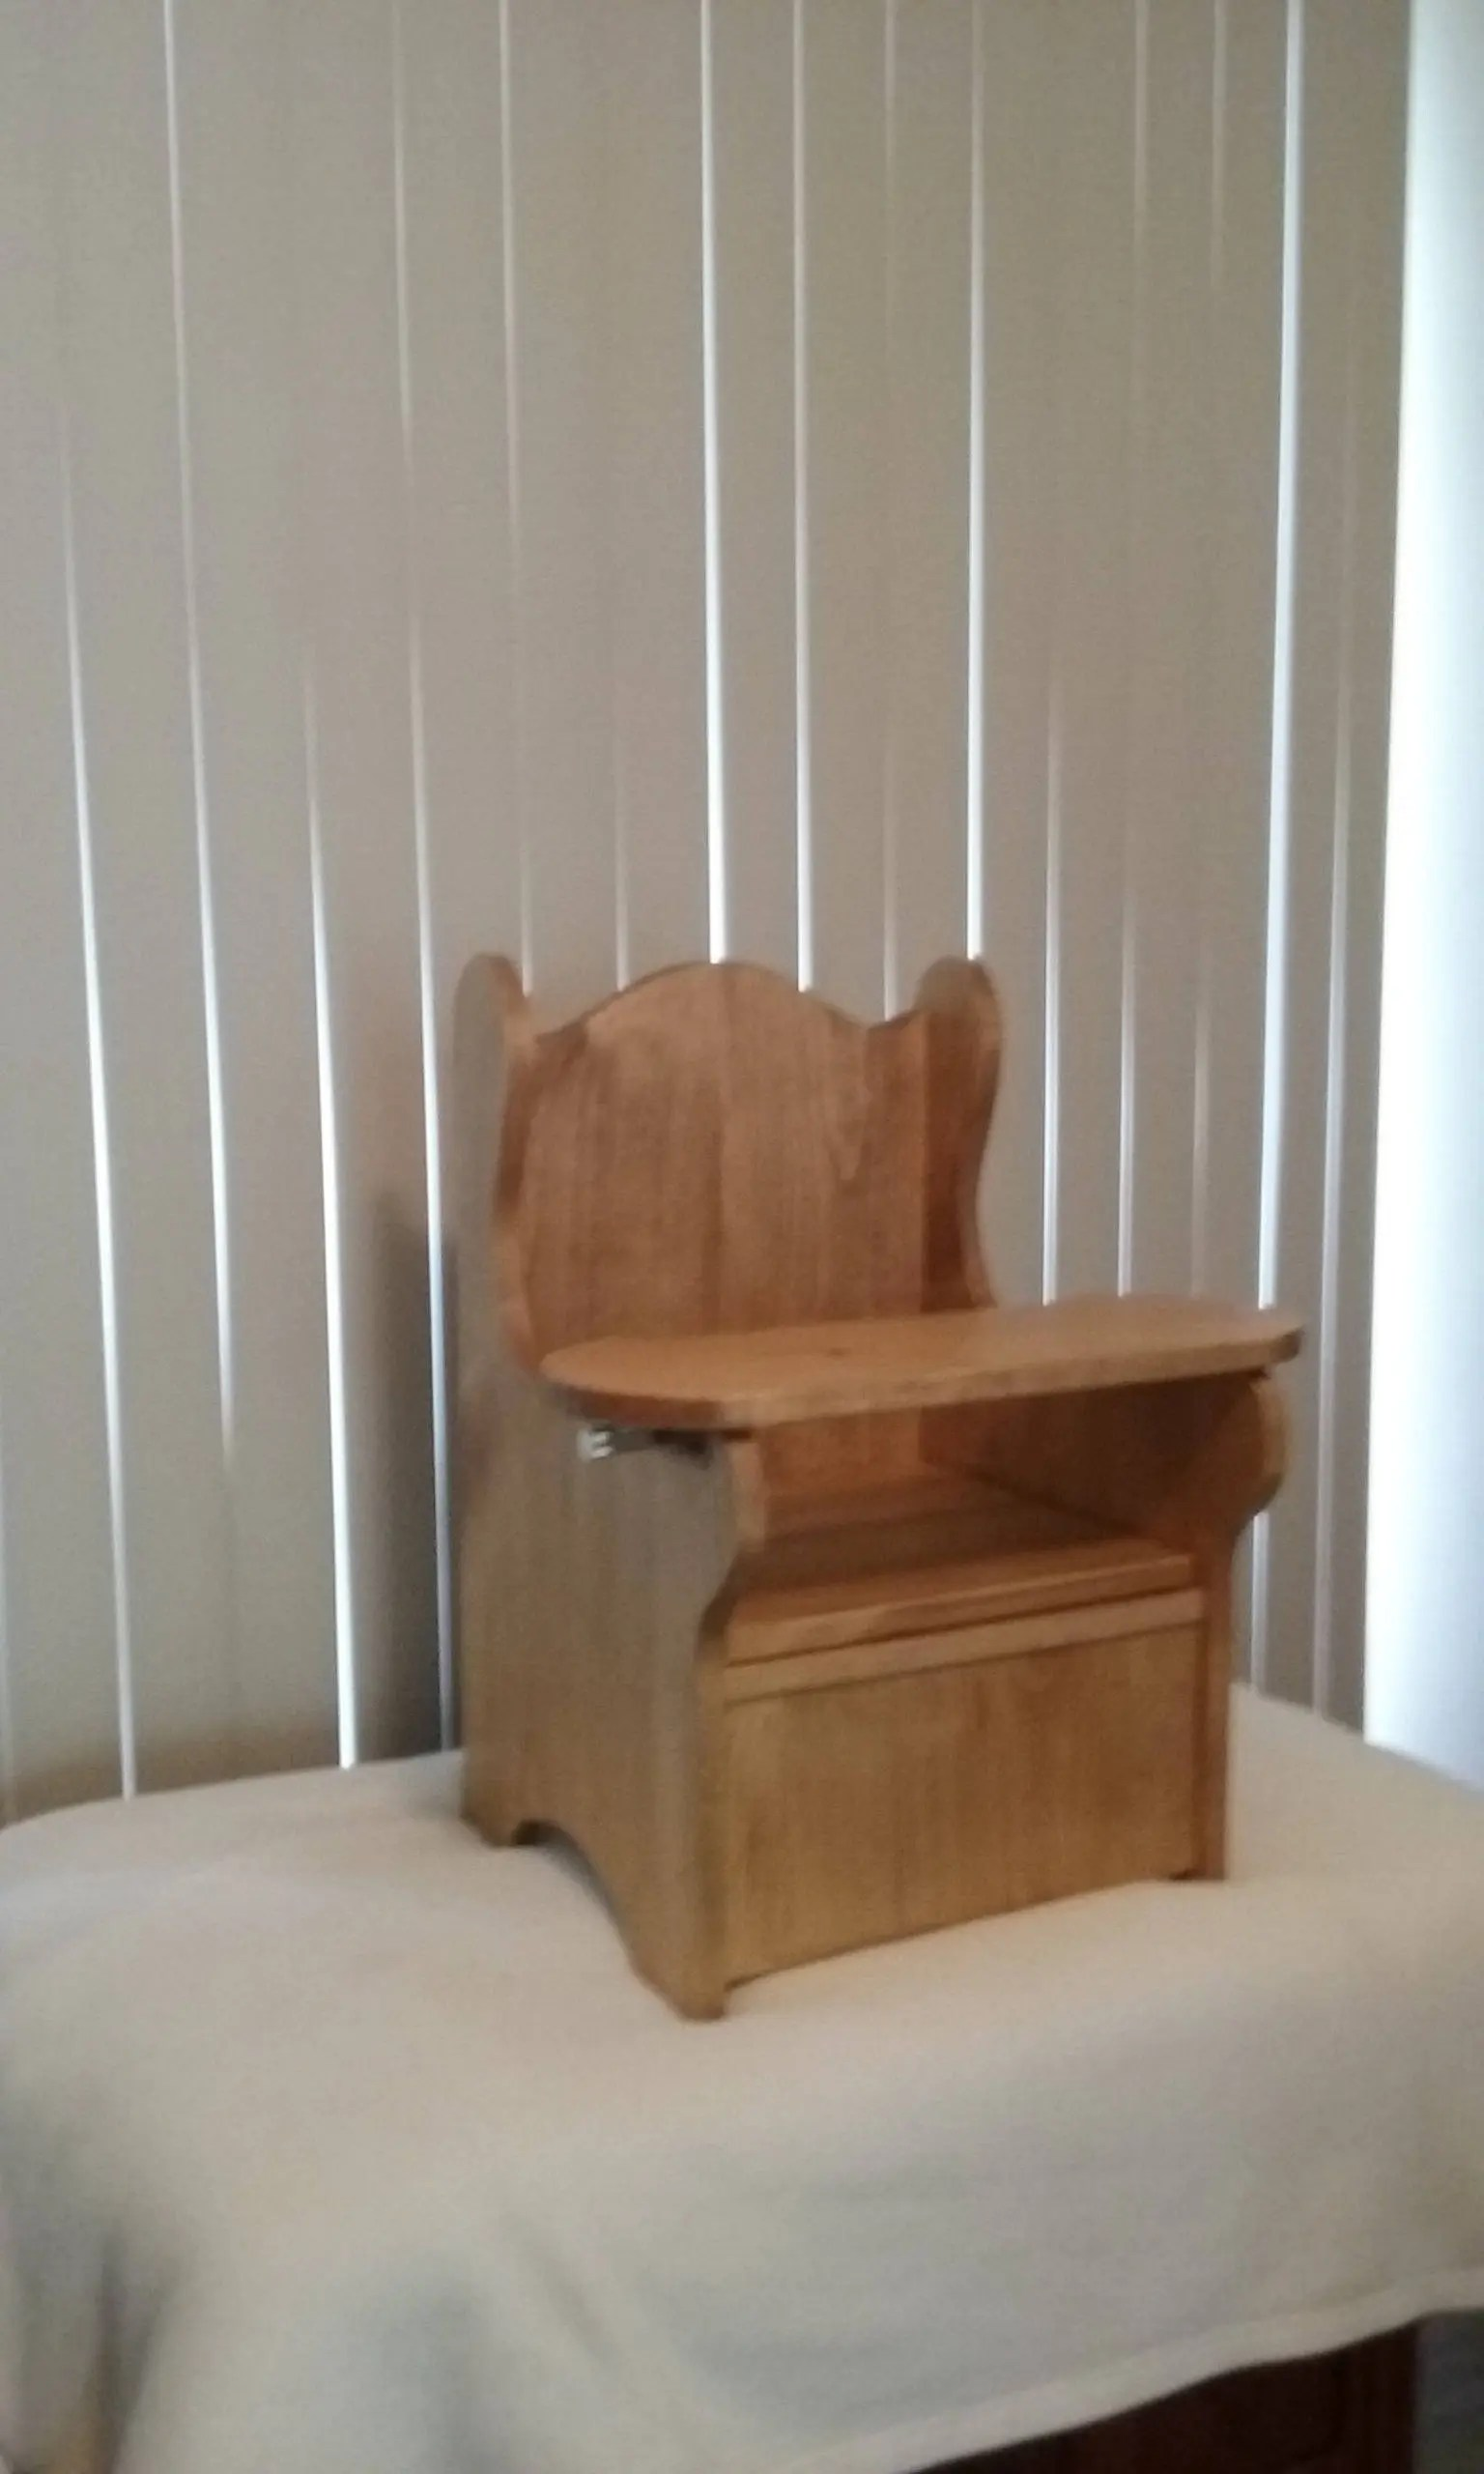 wooden potty chair face down beach large with tray etsy image 0